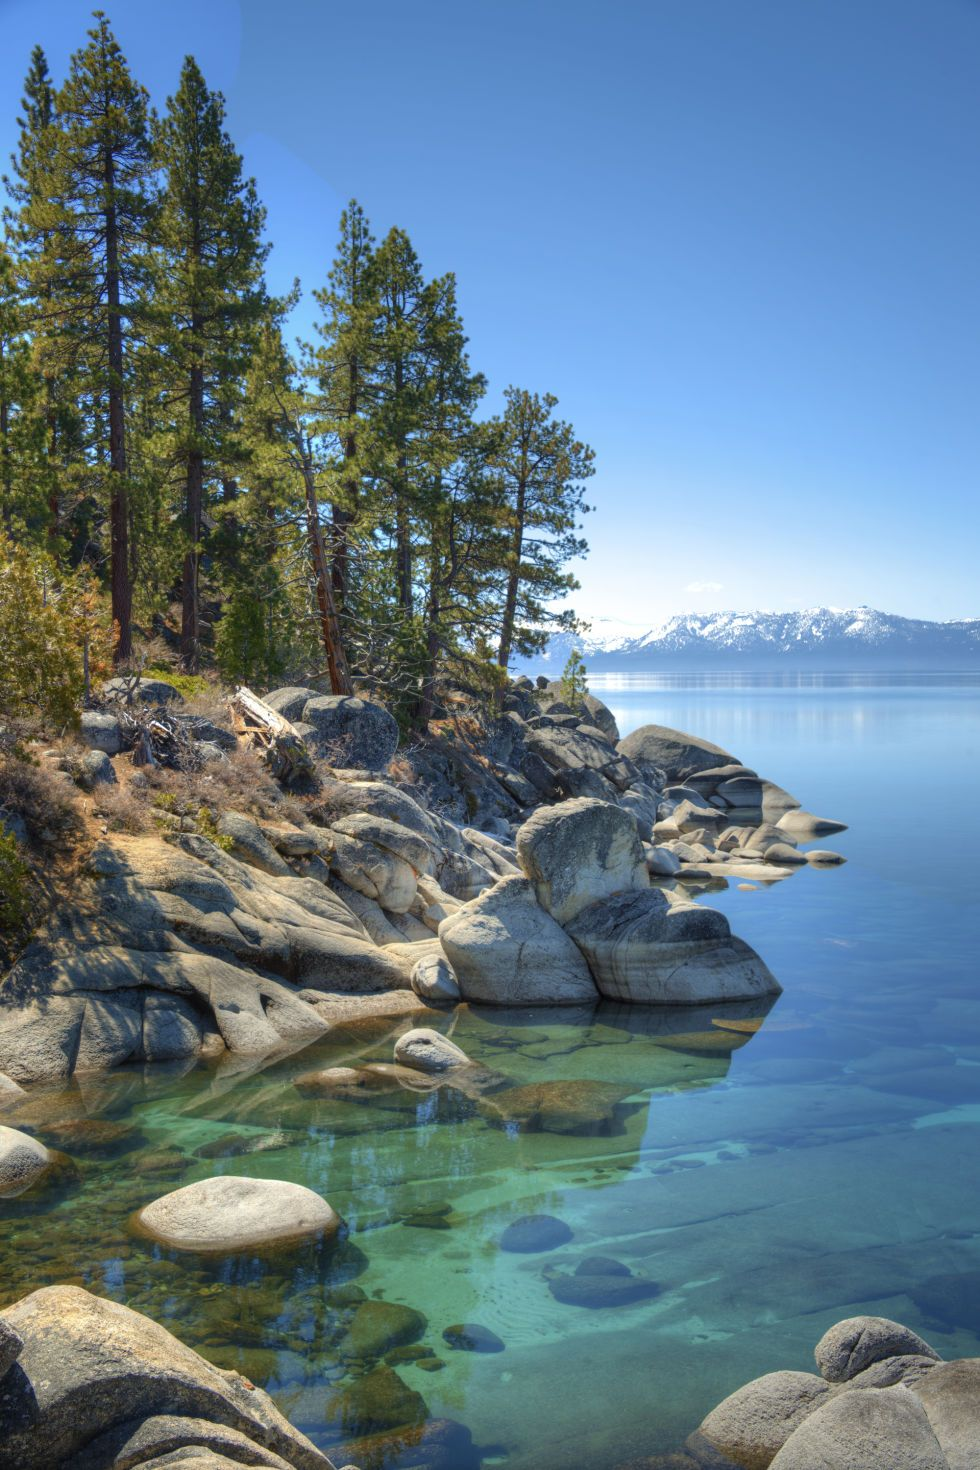 The Most Beautiful Places In America Sierra Nevada Lake - North americas 9 most scenic lakes